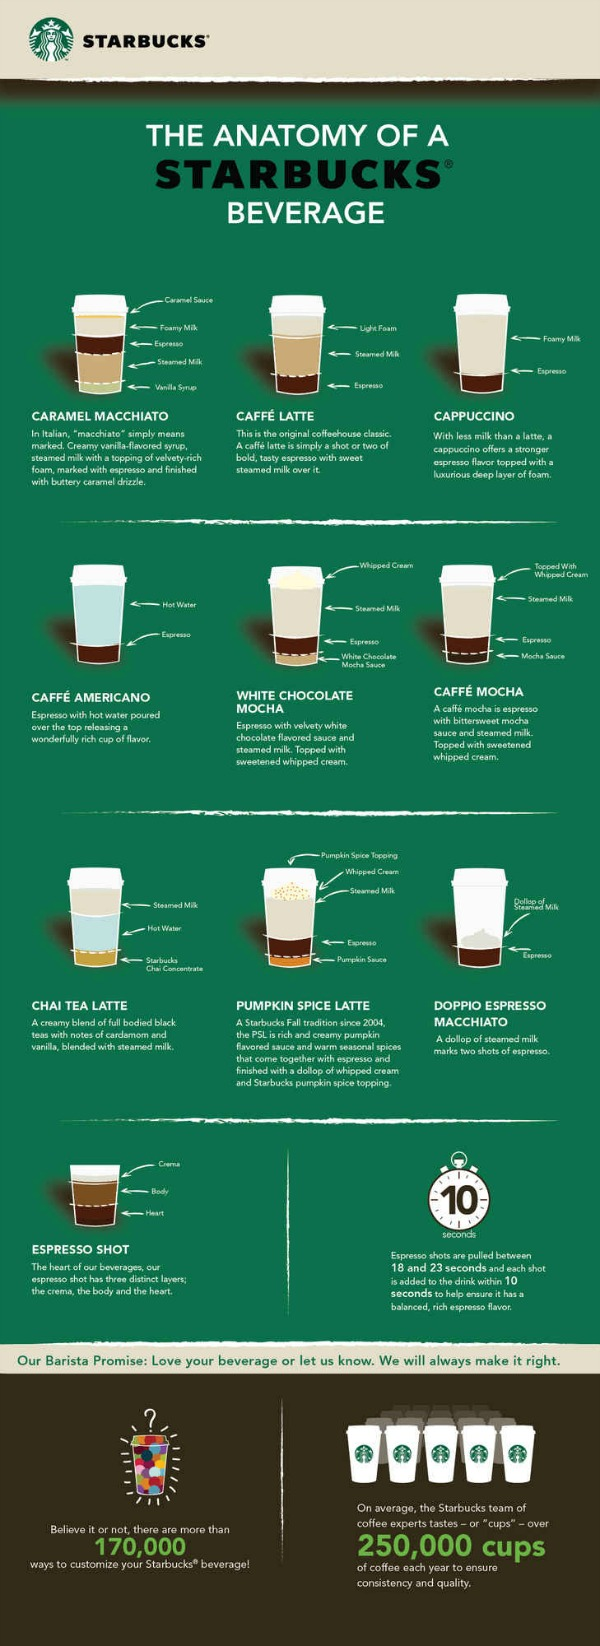 What Goes into a Pumpkin Spice Latte and Other Starbucks Drinks [Infographic]